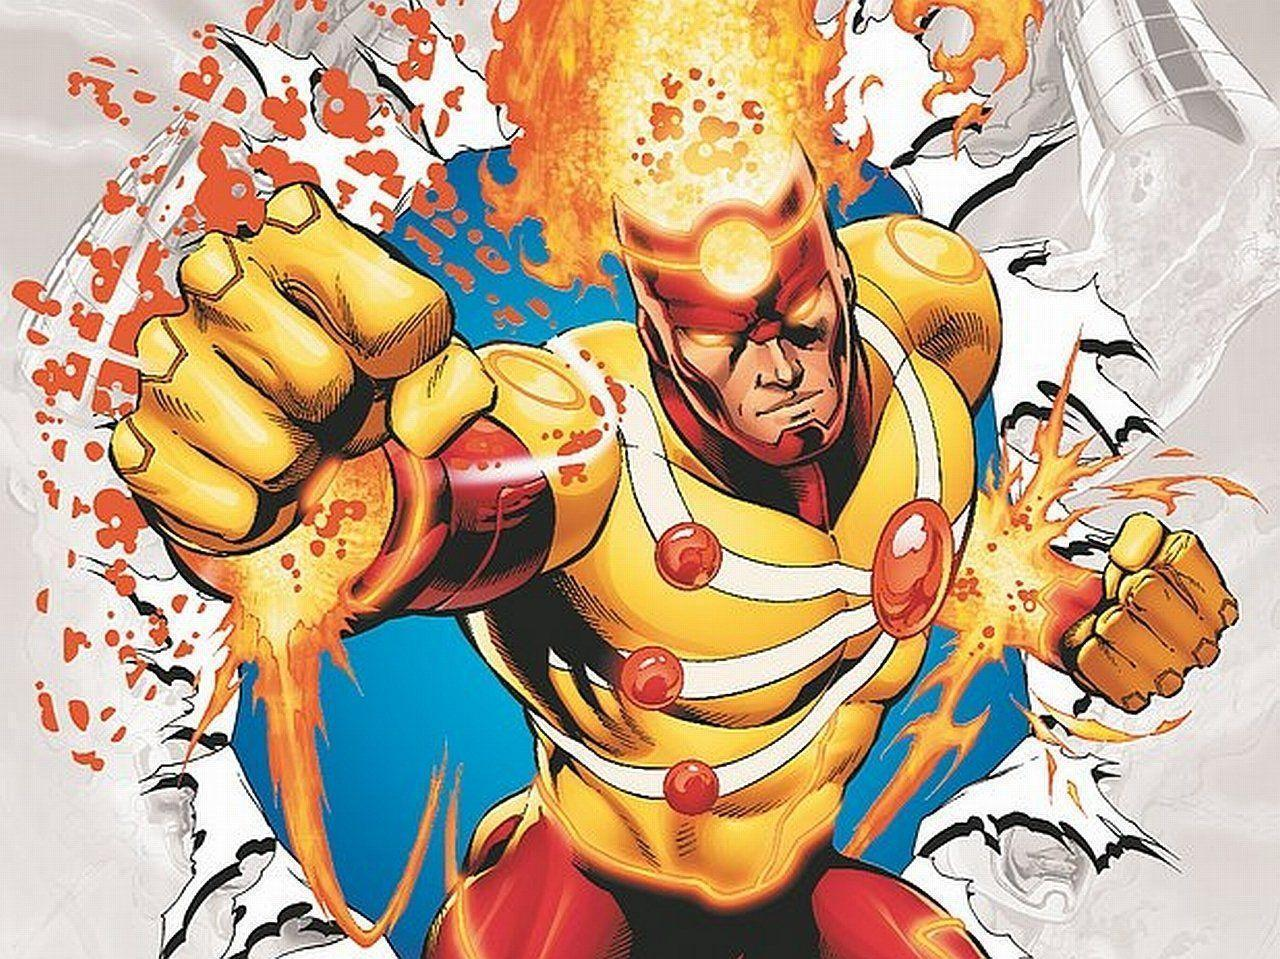 Firestorm Computer Wallpapers, Desktop Backgrounds